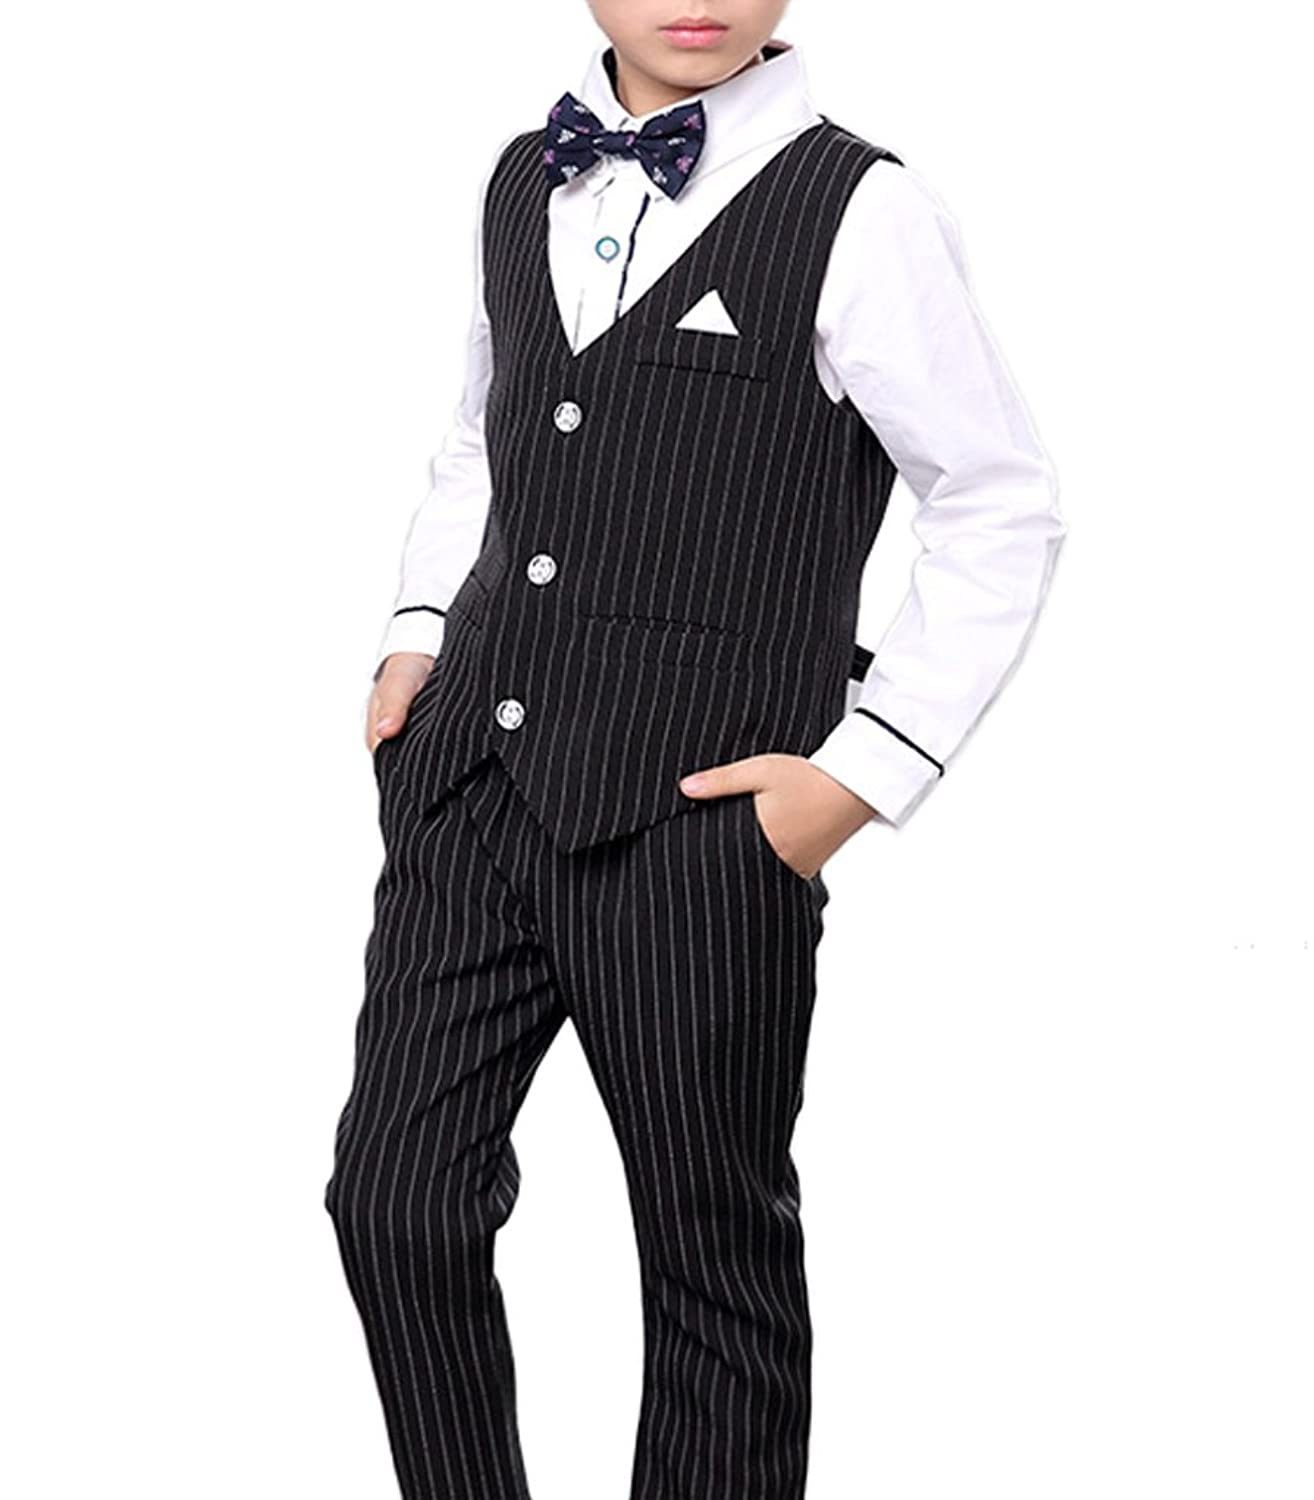 1940s Children's Clothing: Girls, Boys, Baby, Toddler Boys Pinstripe Vest Set Vest + Pants + Shirt 3 Pieces Black & Blue 2 Colors $29.99 AT vintagedancer.com